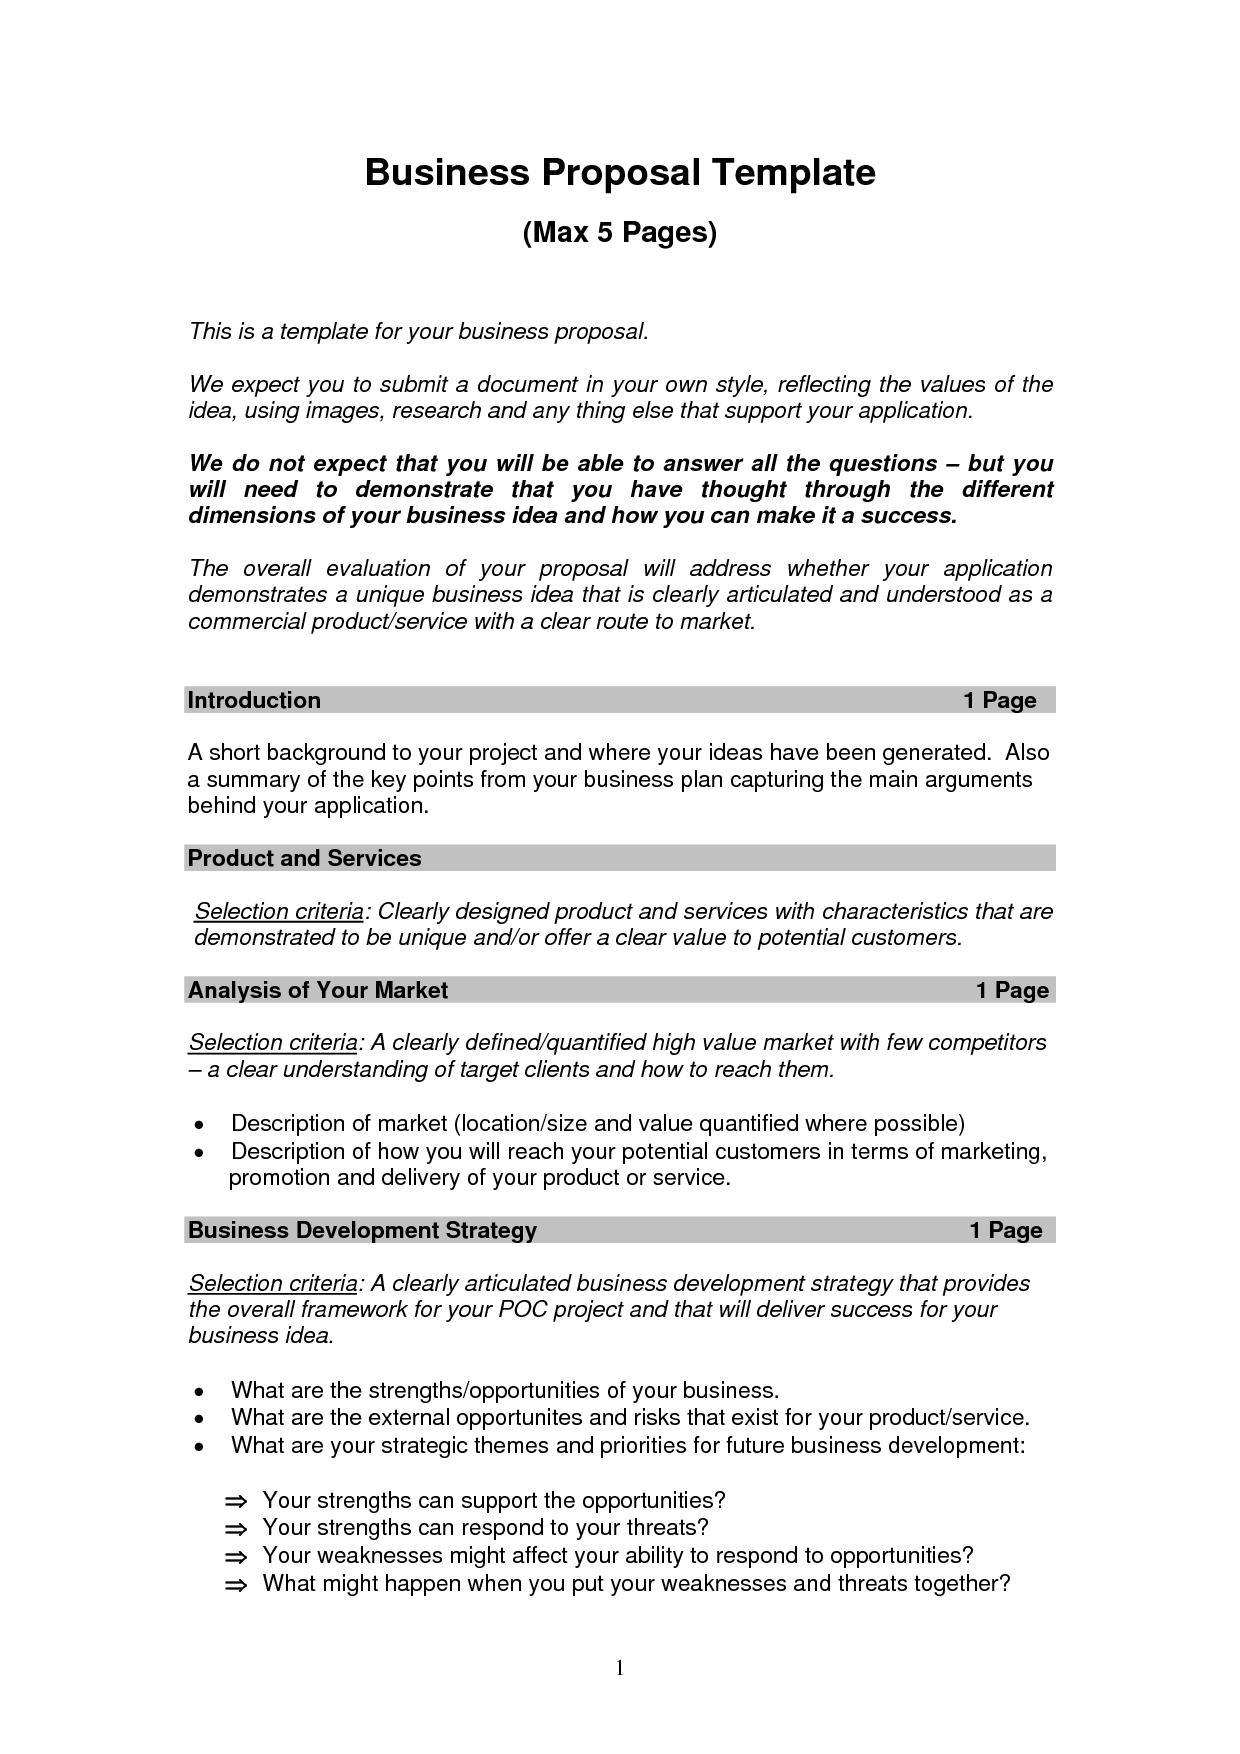 Business Proposal Templates Examples  Business Proposal Sample Within Idea Proposal Template